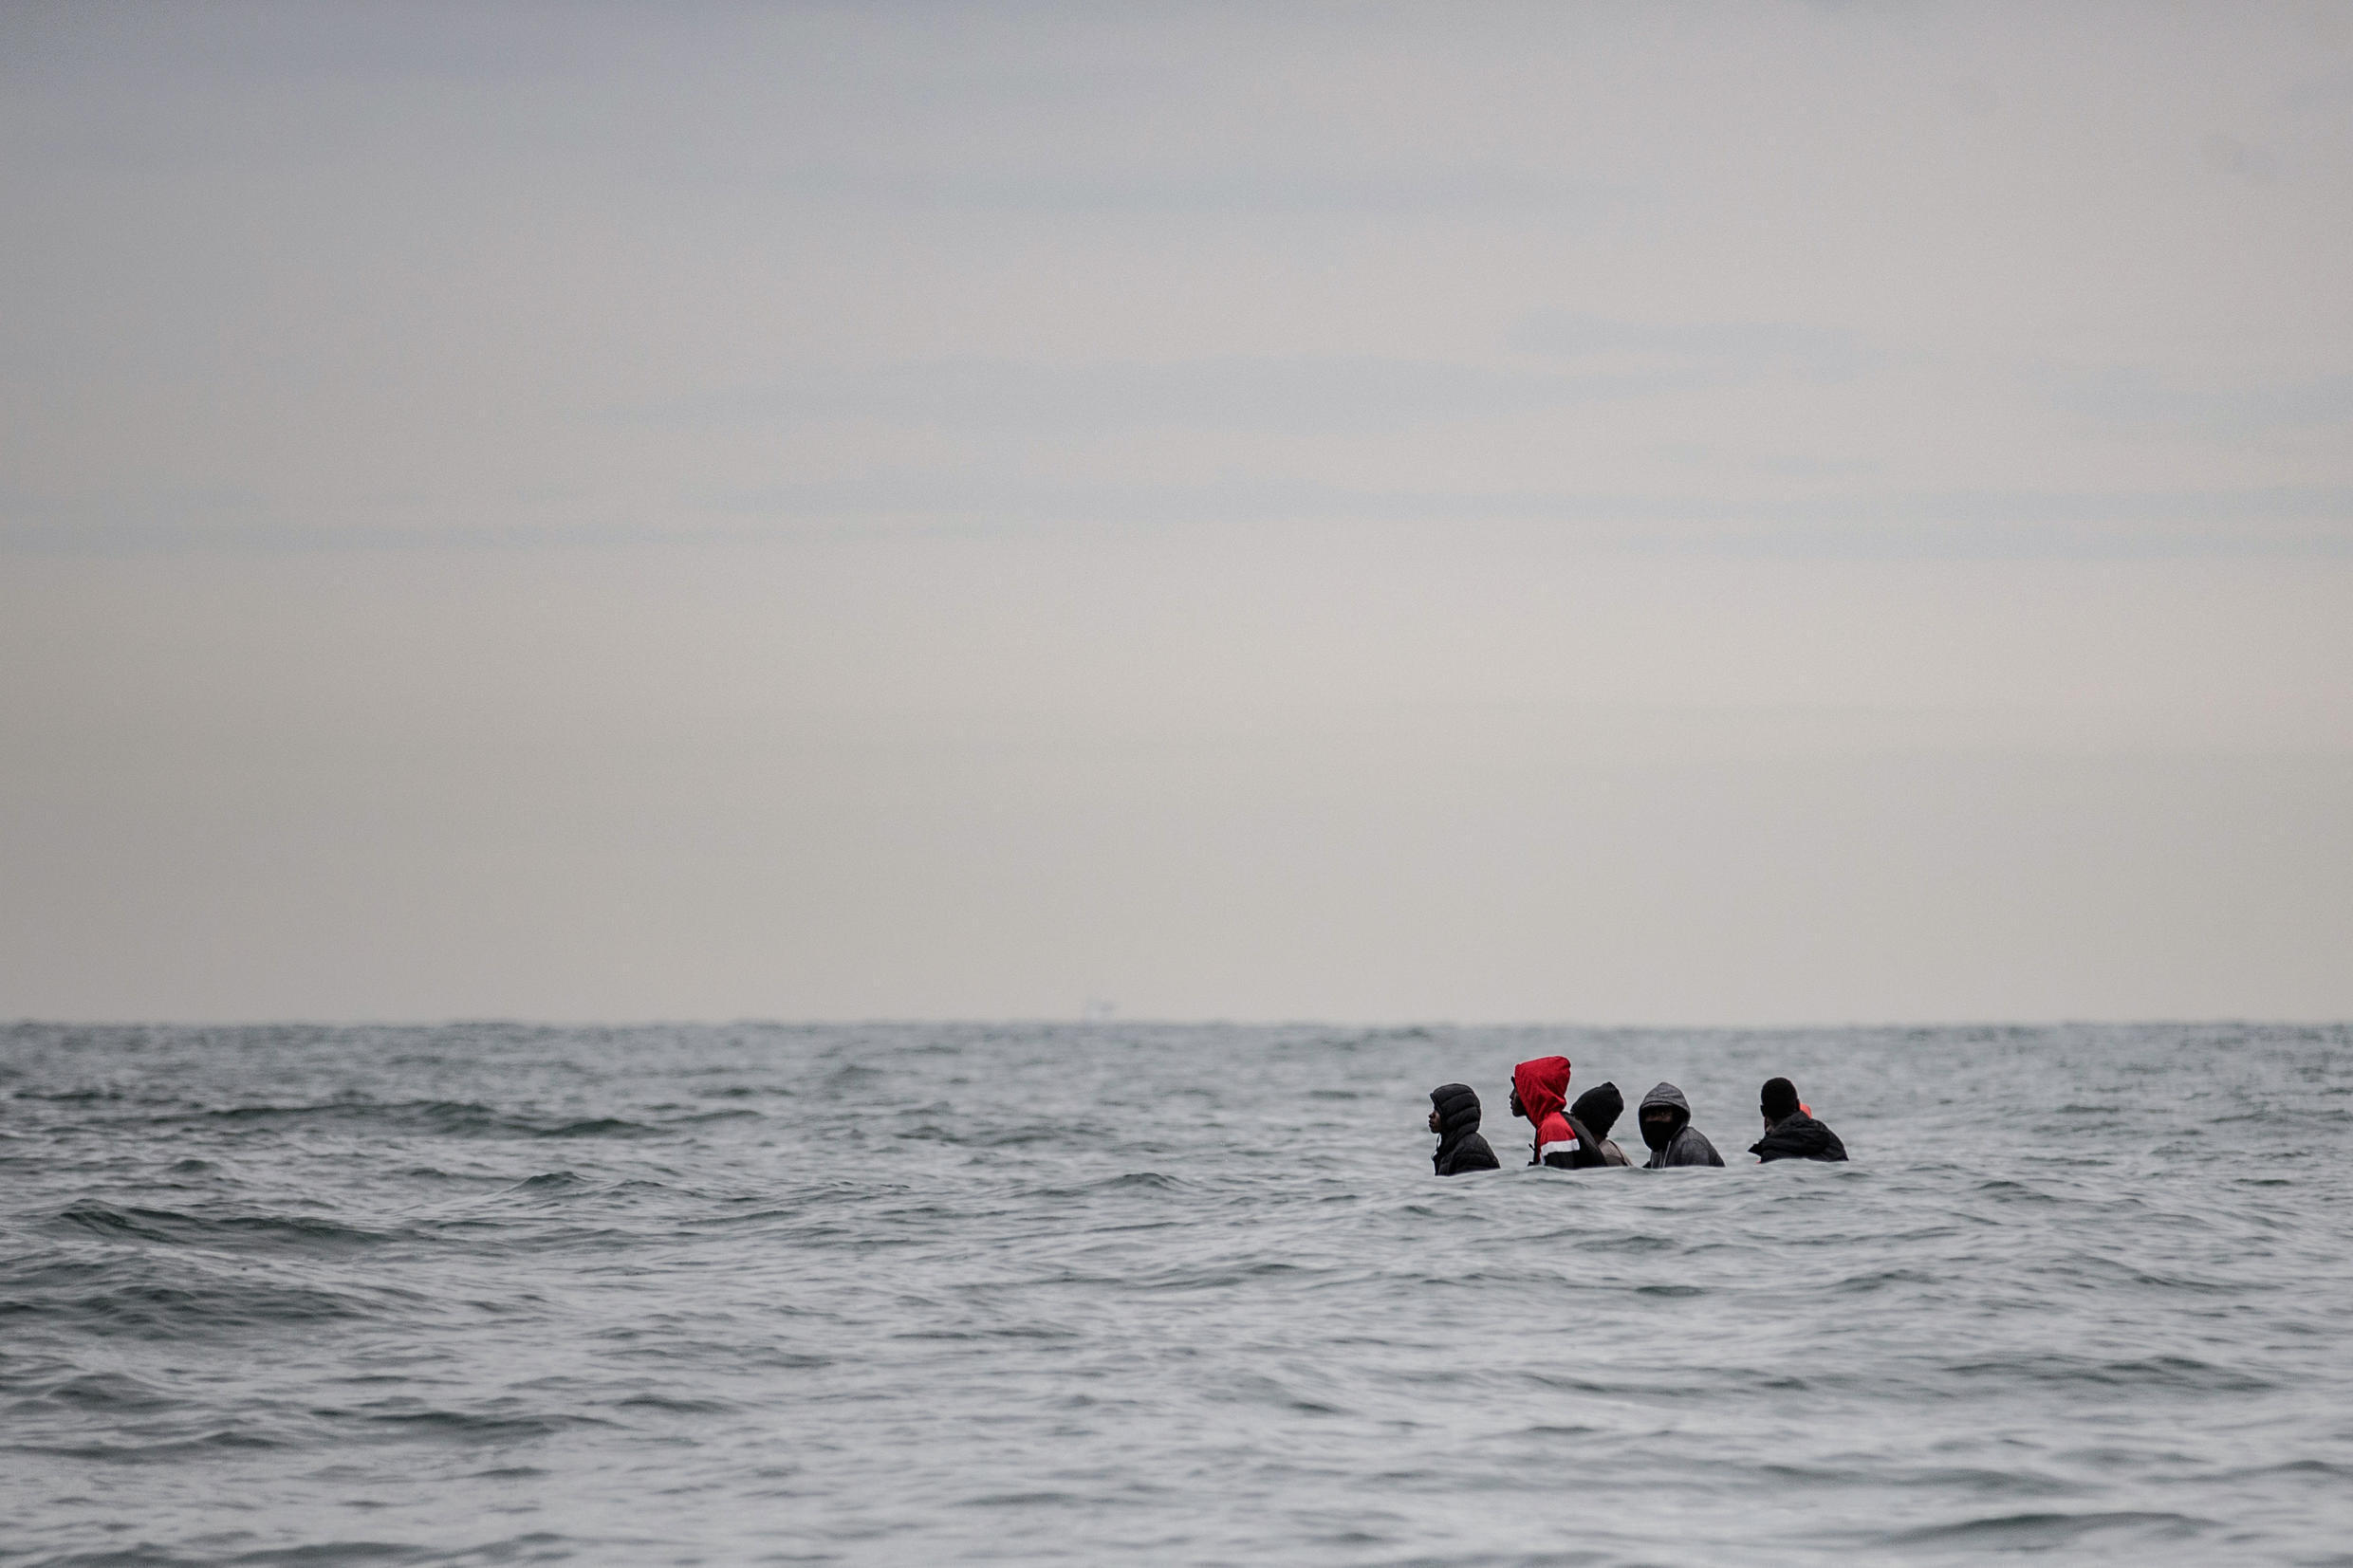 Migrants attempting to cross the Channel in a small boat in August 2020.